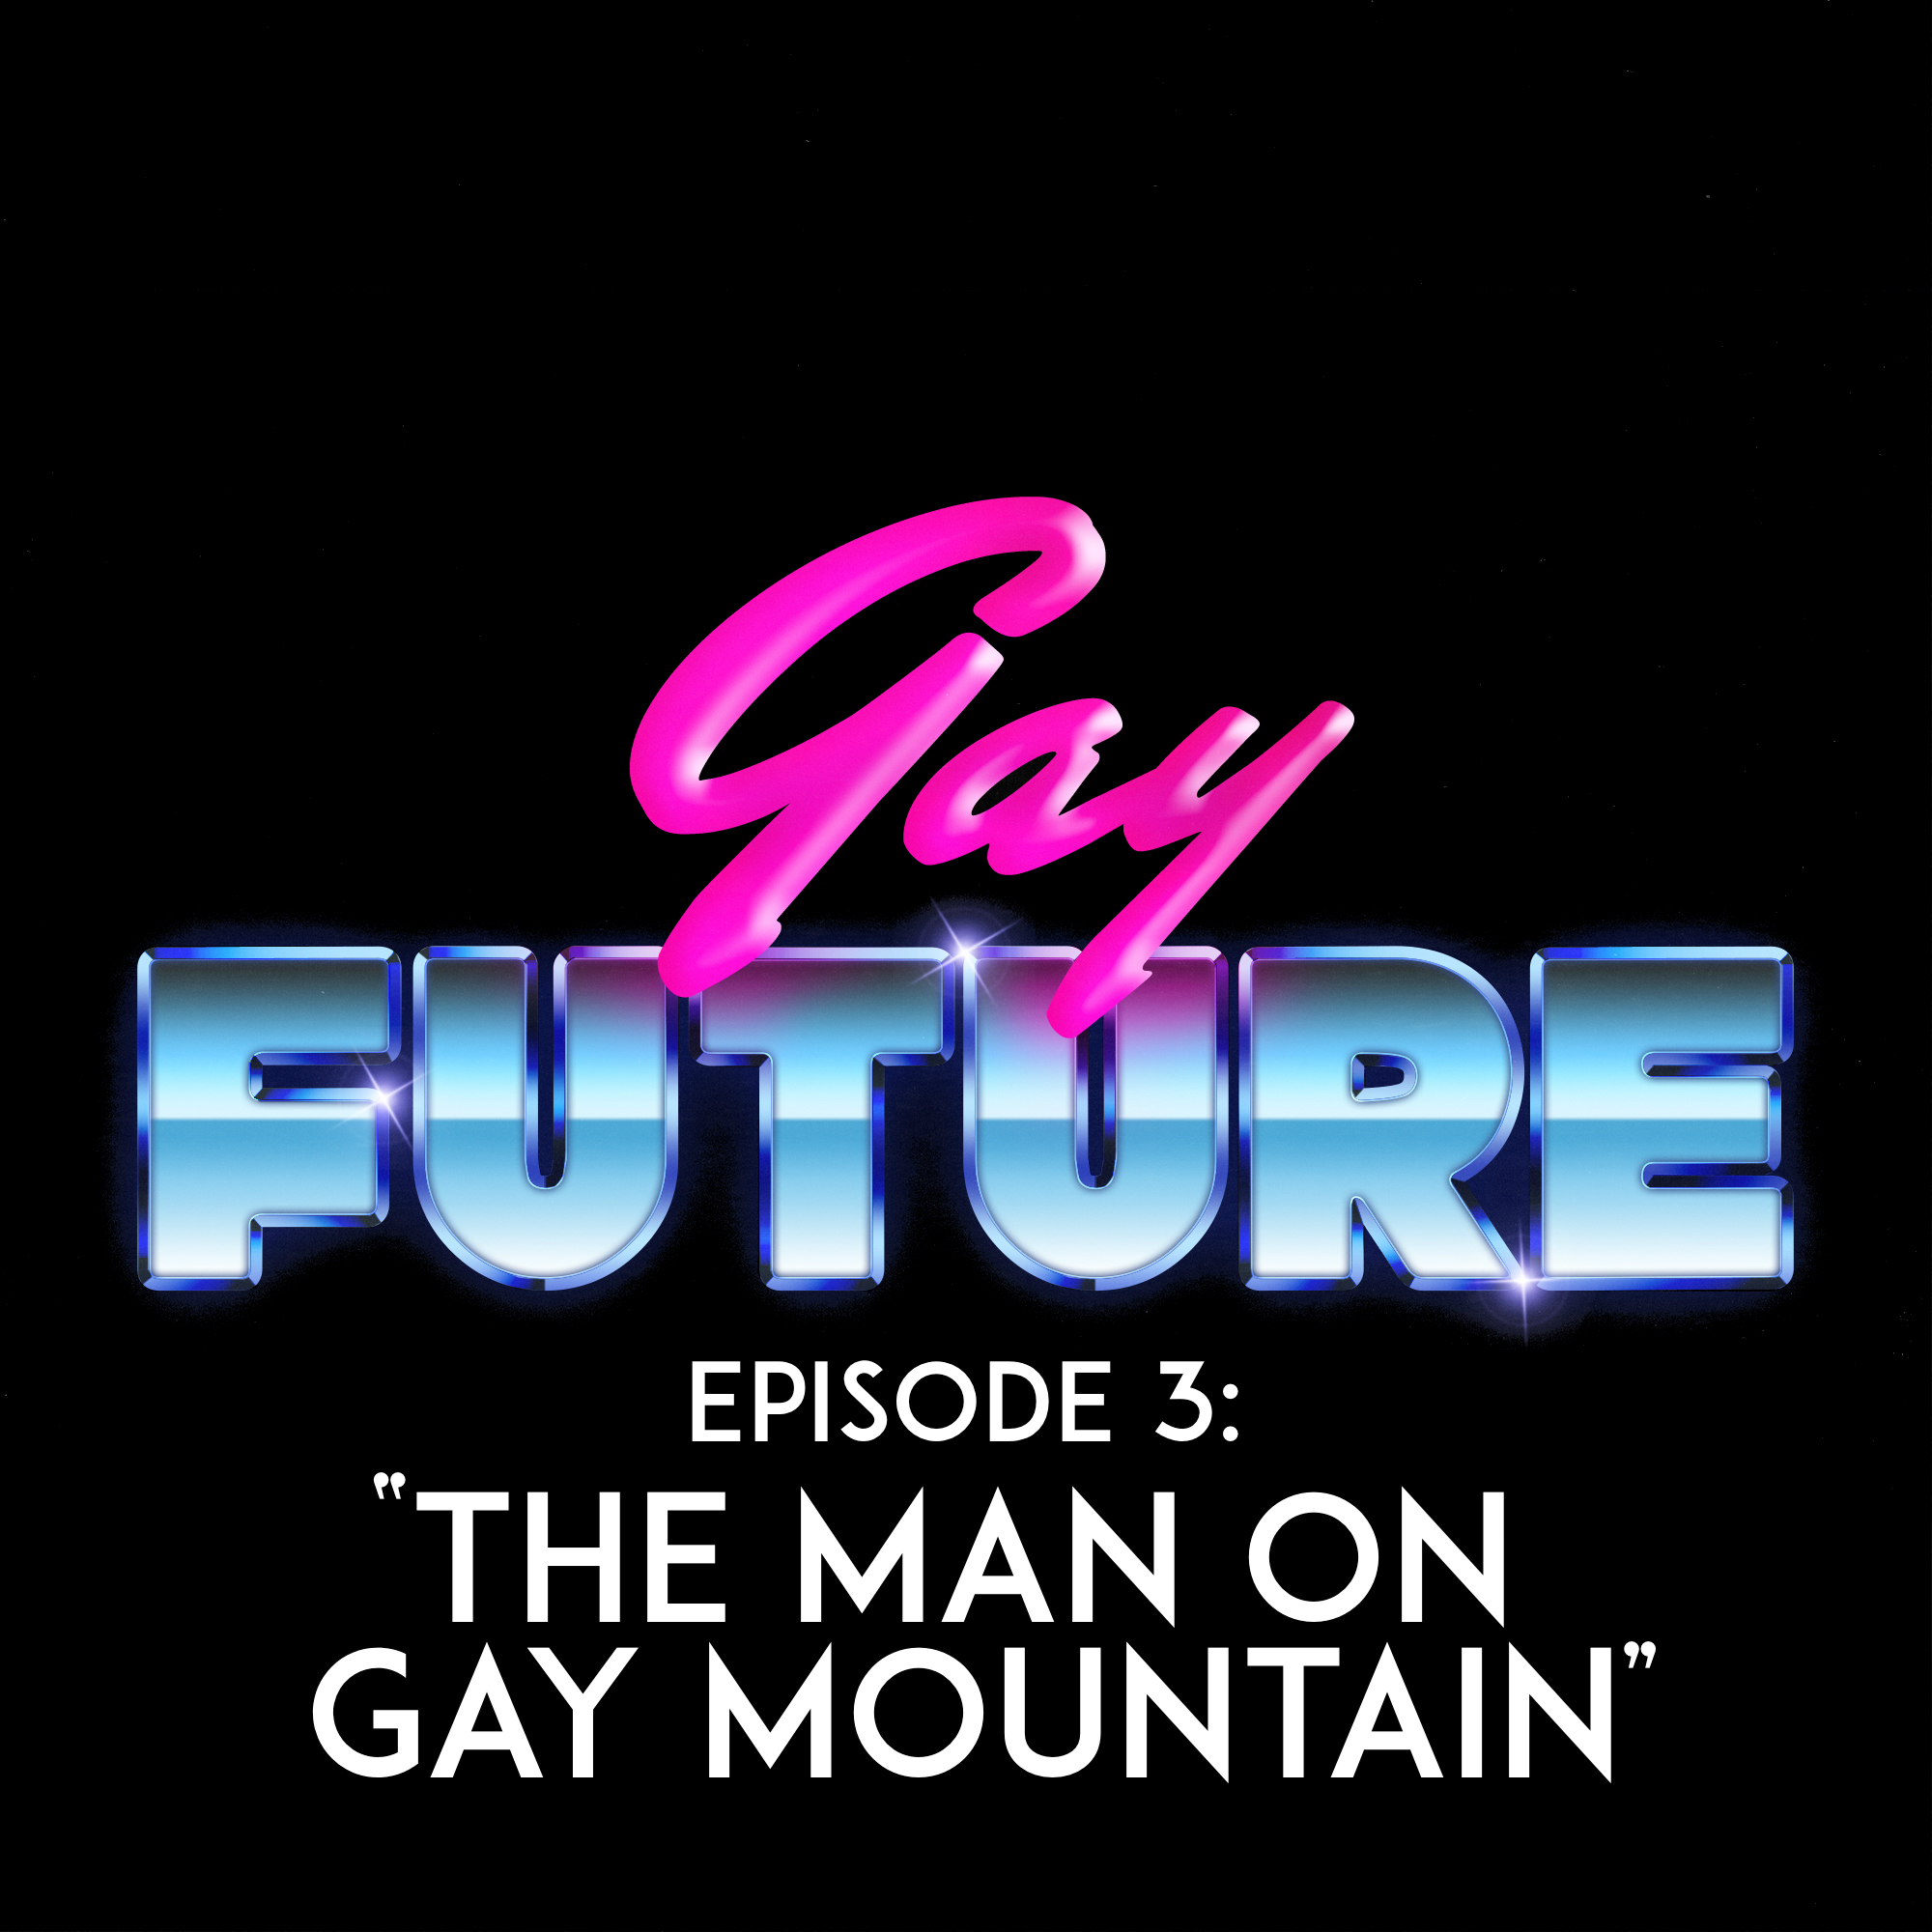 EPISODE 3: THE MAN ON GAY MOUNTAIN   The crew finally arrives at the Lost City of Straights and must find the elusive Rebel Leader.  But before Mikey can take over the army and lead a rebellion, he must hone his true Straightness.